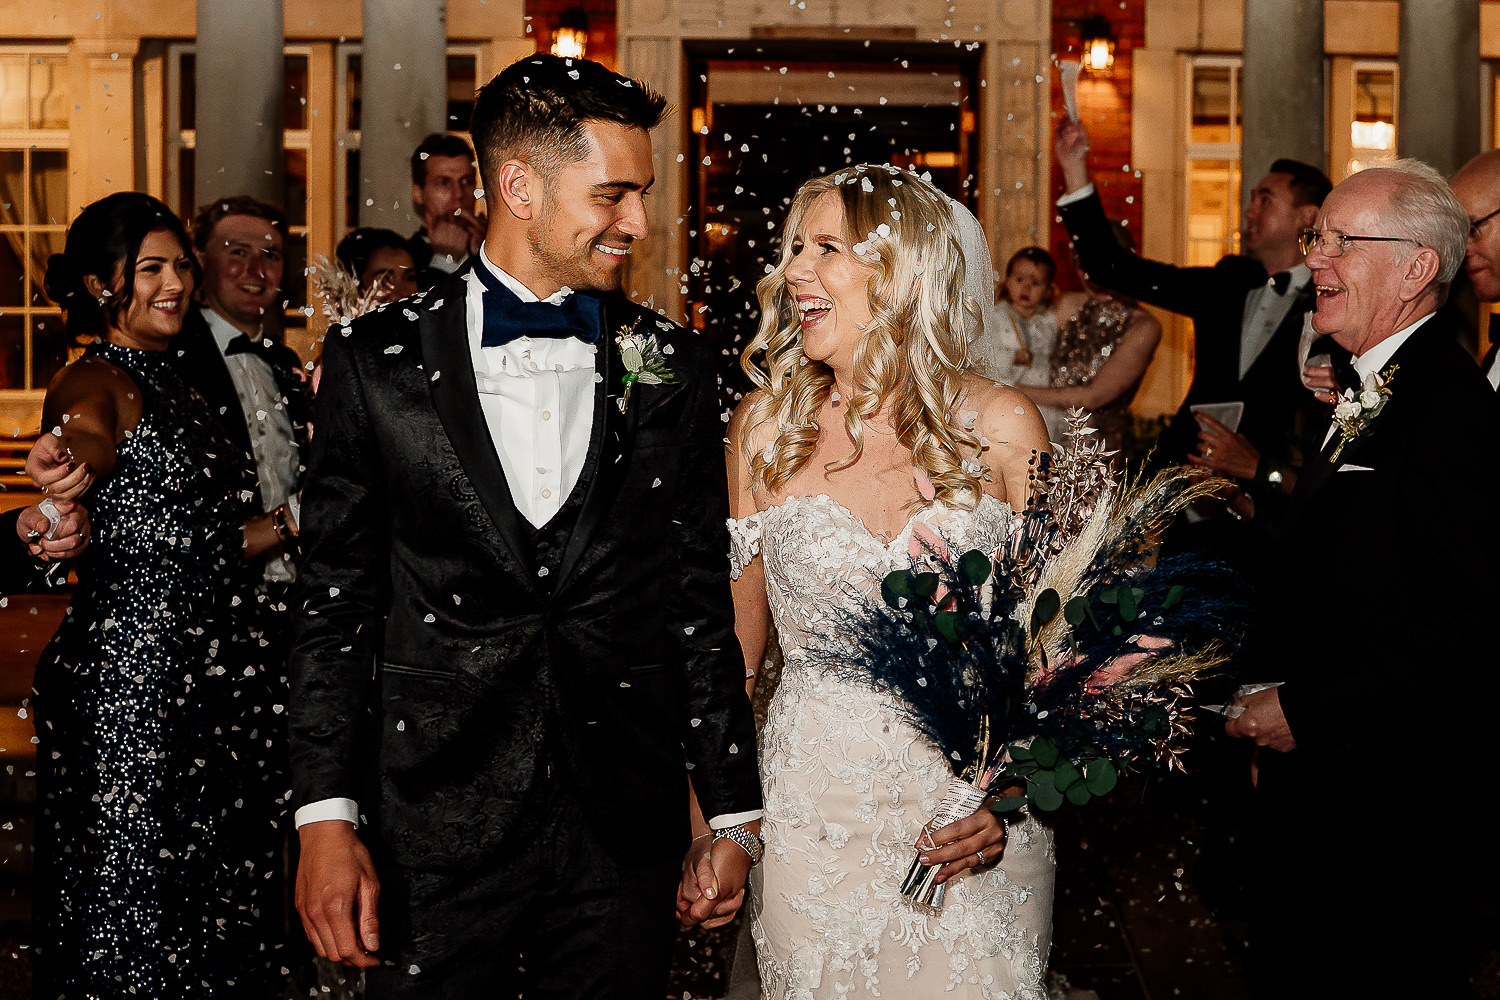 The couple laughing with confetti